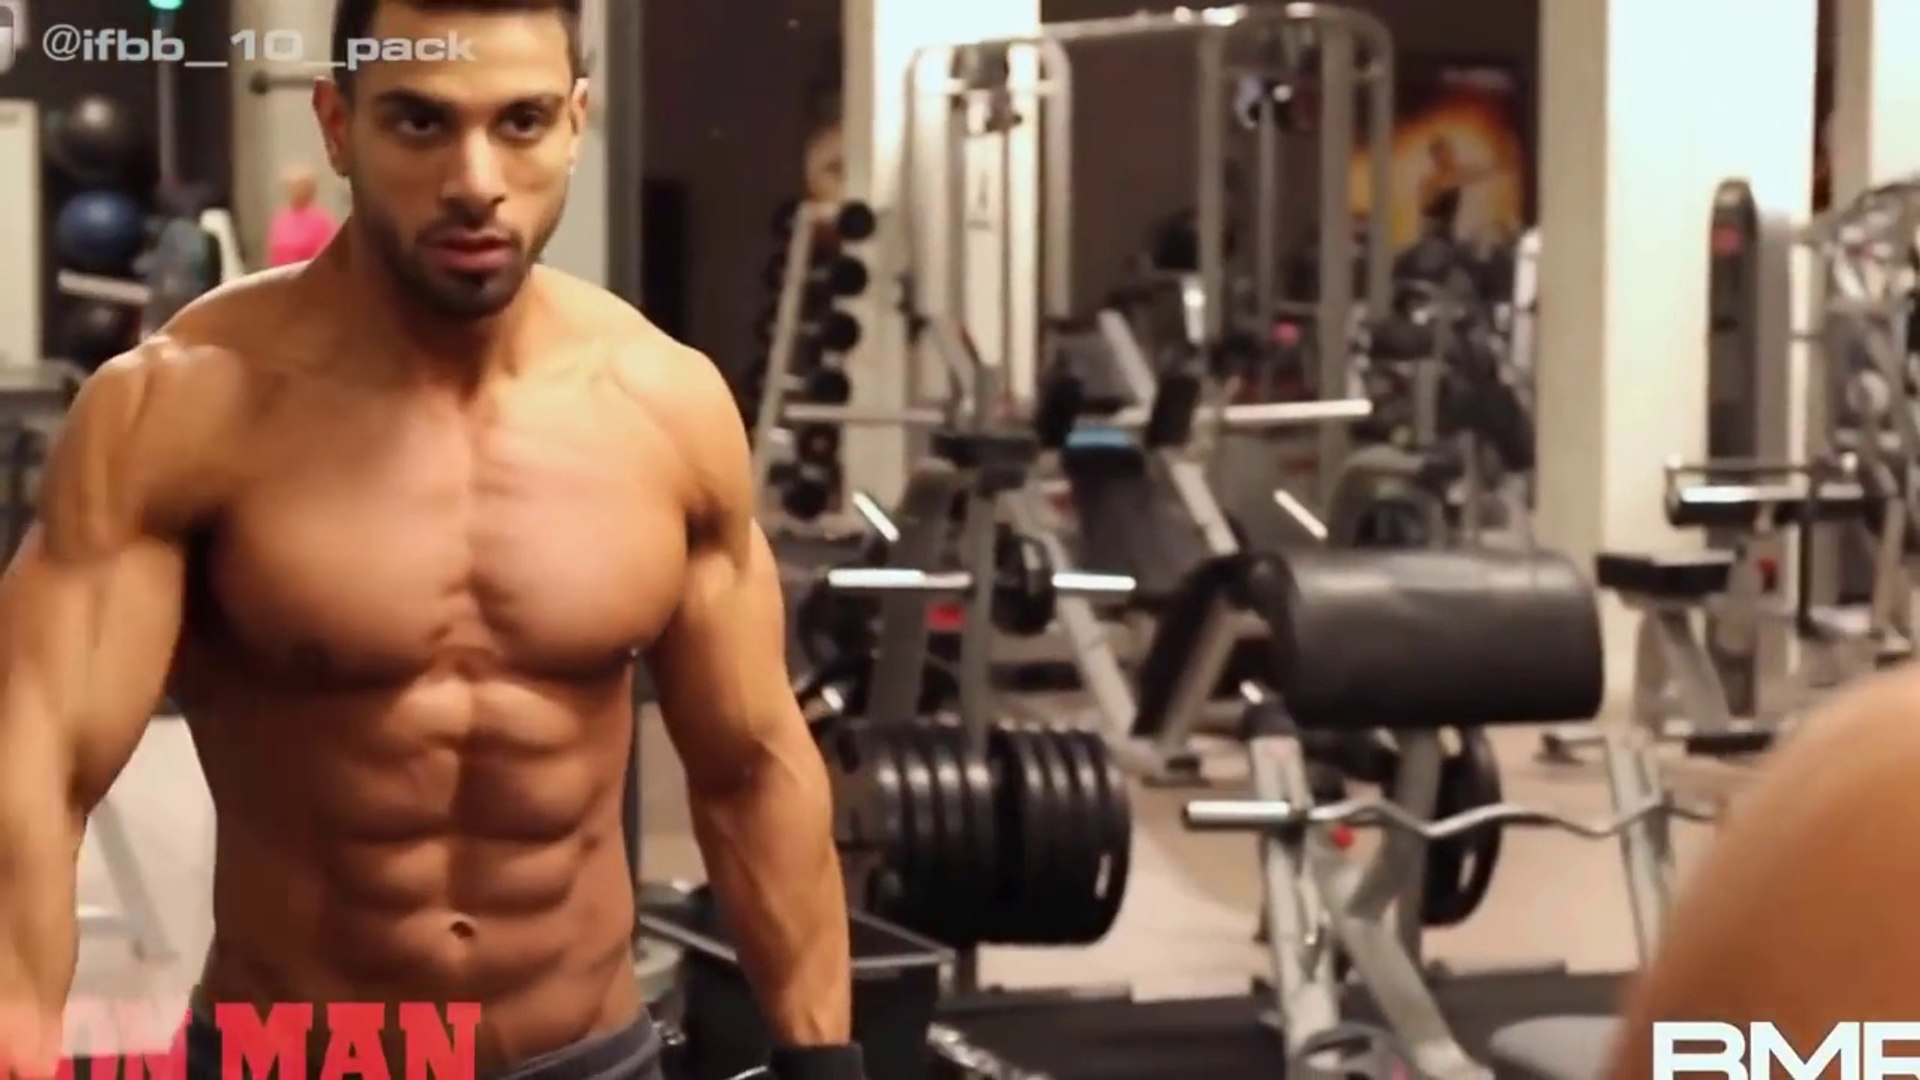 Beast ABS in the world Mr Ali ....Bodybuilding Motivation video 2018